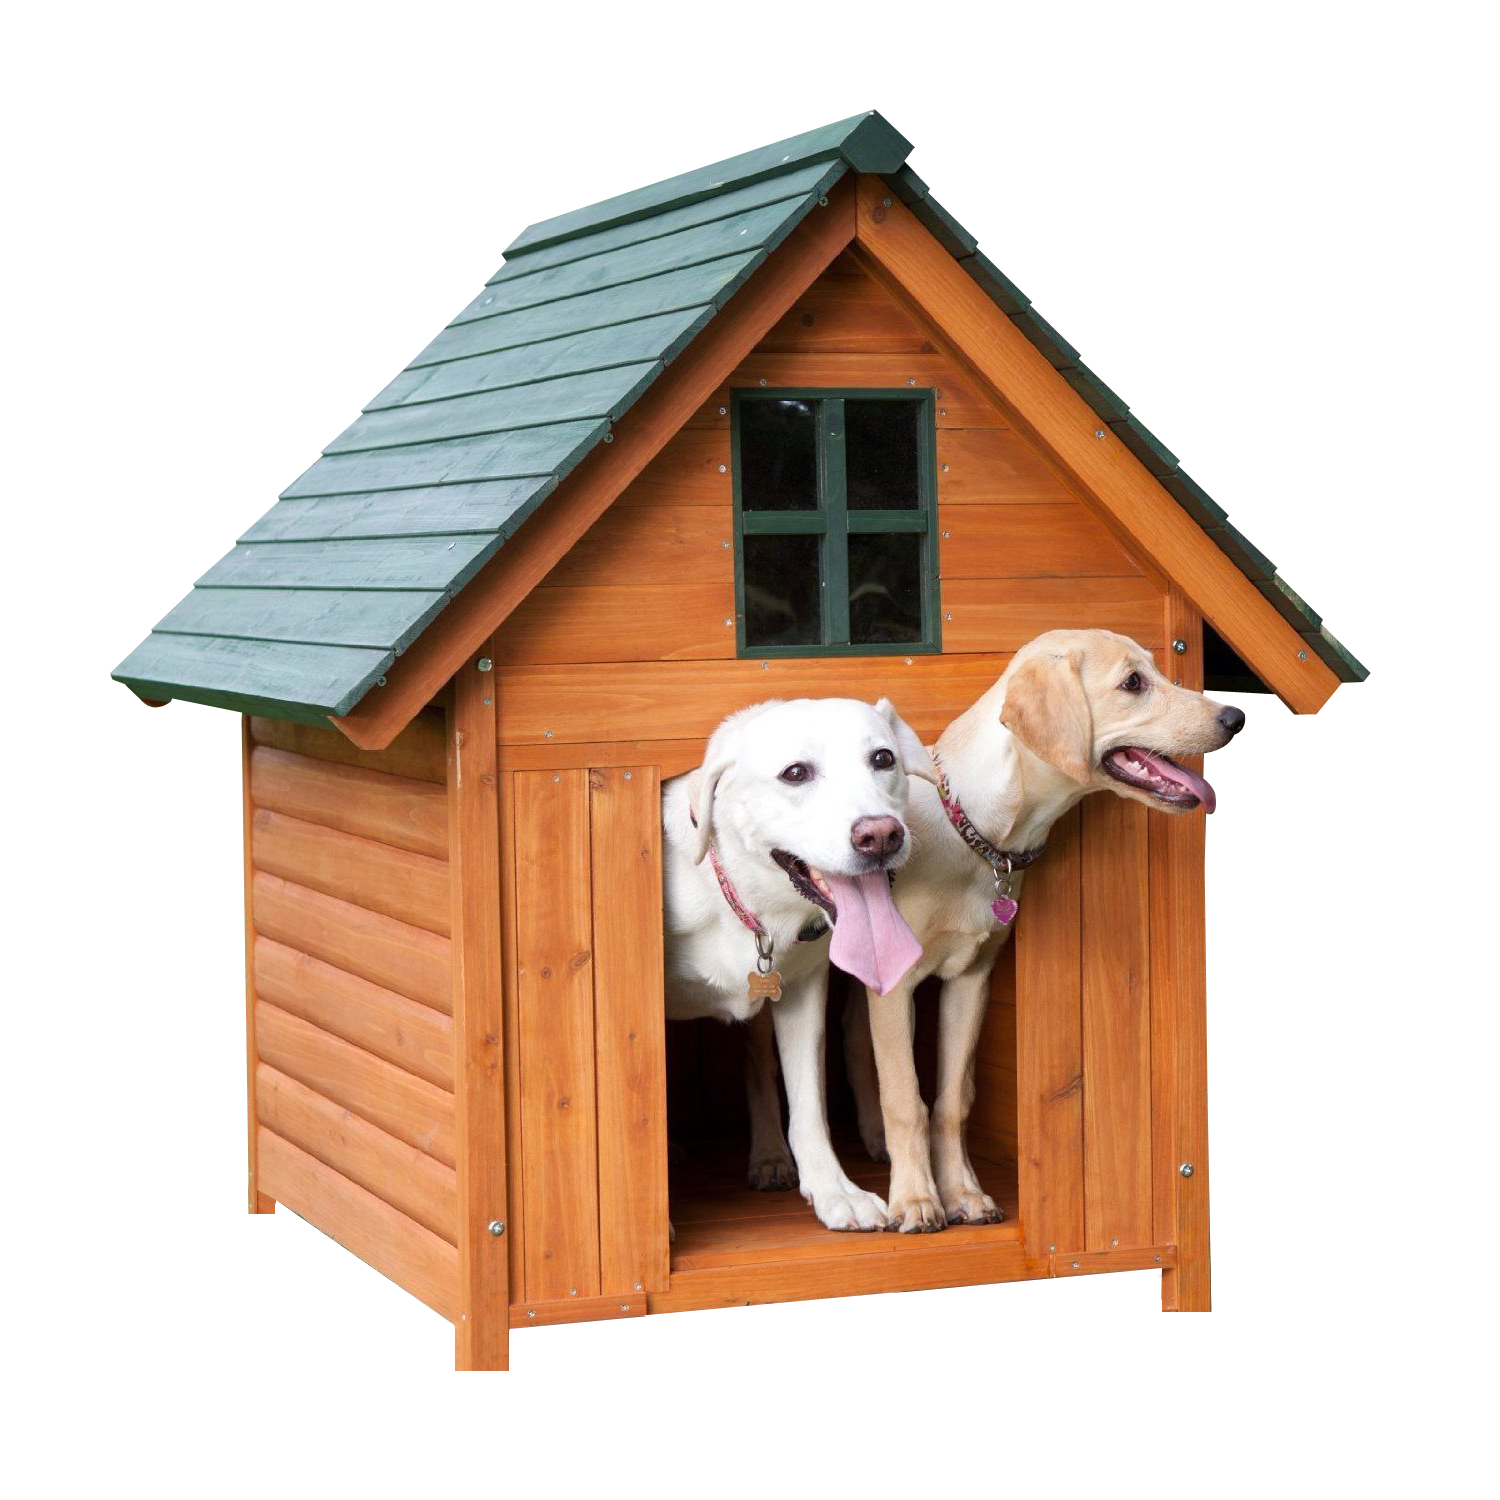 Clipart dog houses image black and white download Dog House PNG Image - PurePNG | Free transparent CC0 PNG Image Library image black and white download